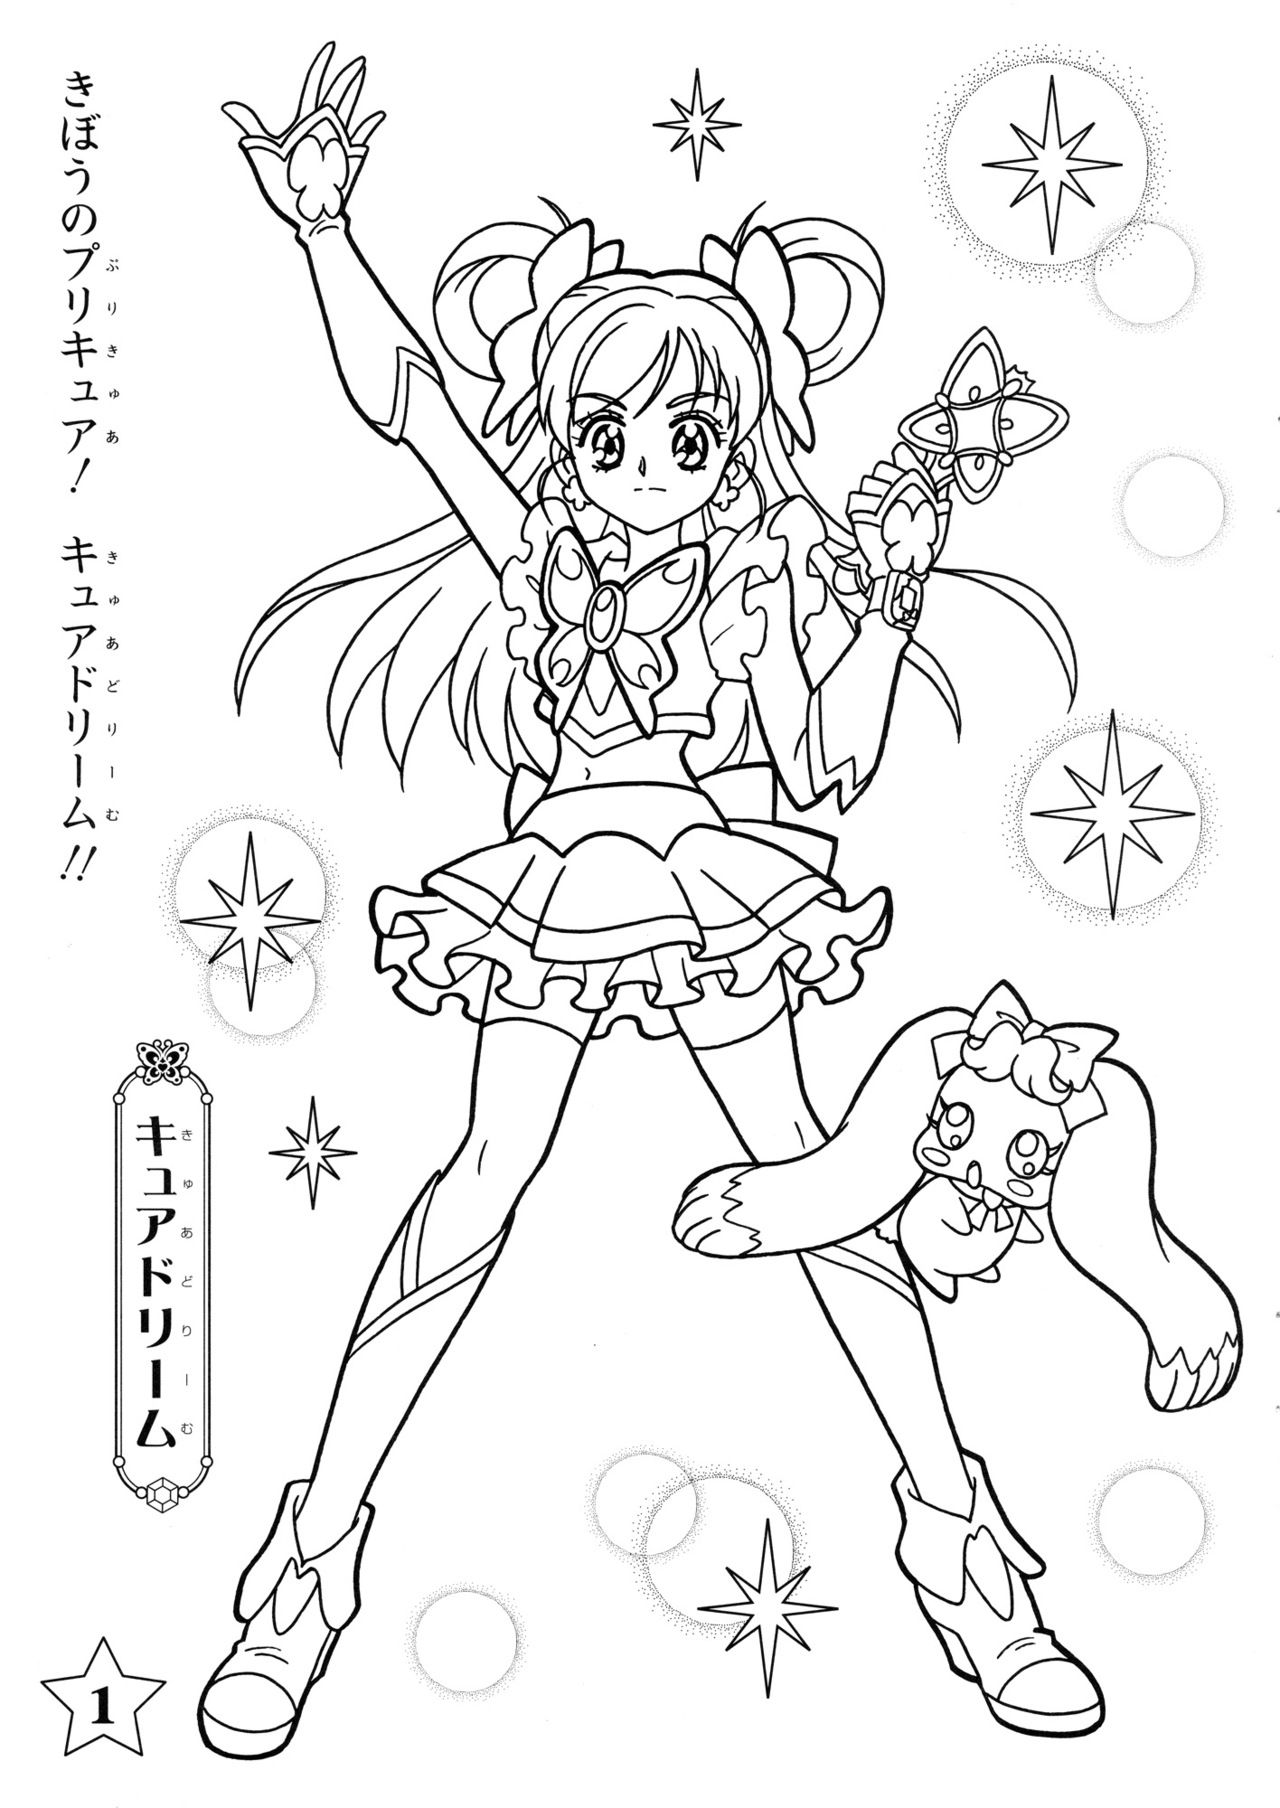 Free coloring pages of dark dream precure | Coloring-Japan[animi ...